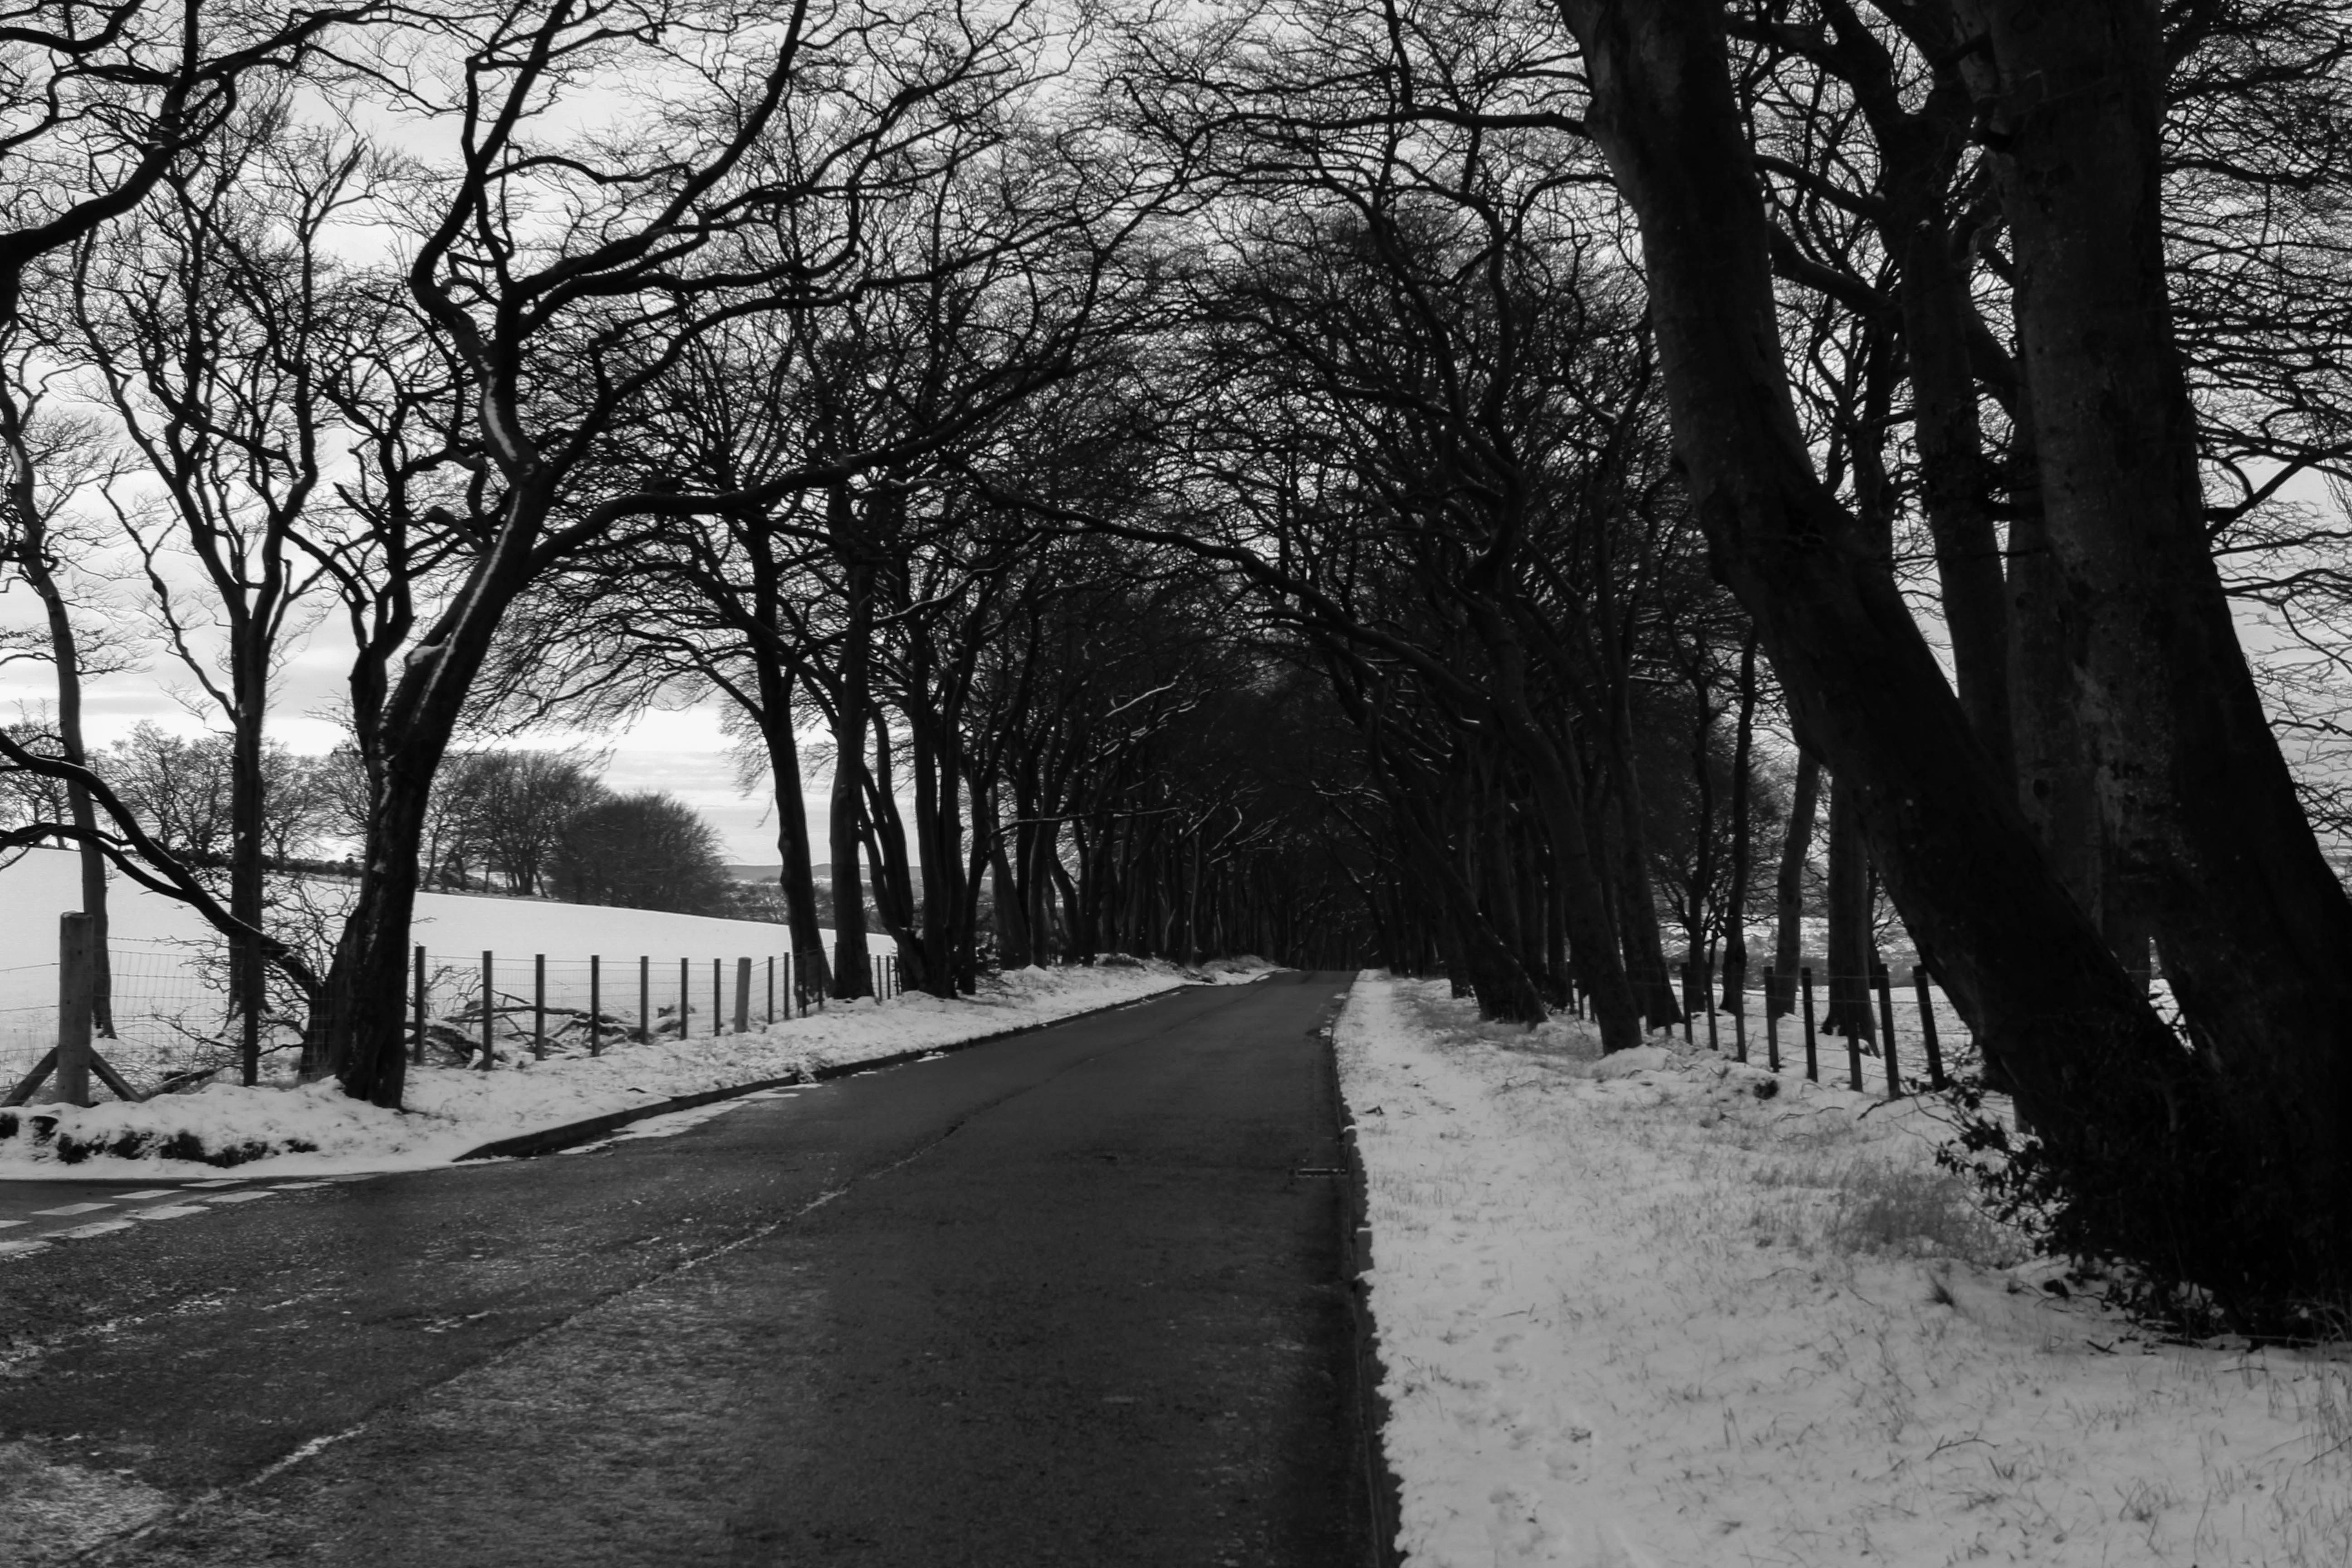 Grayscale Photo of Road in Between Withered Trees, Black and white, Road, Winter landscape, Winter, HQ Photo